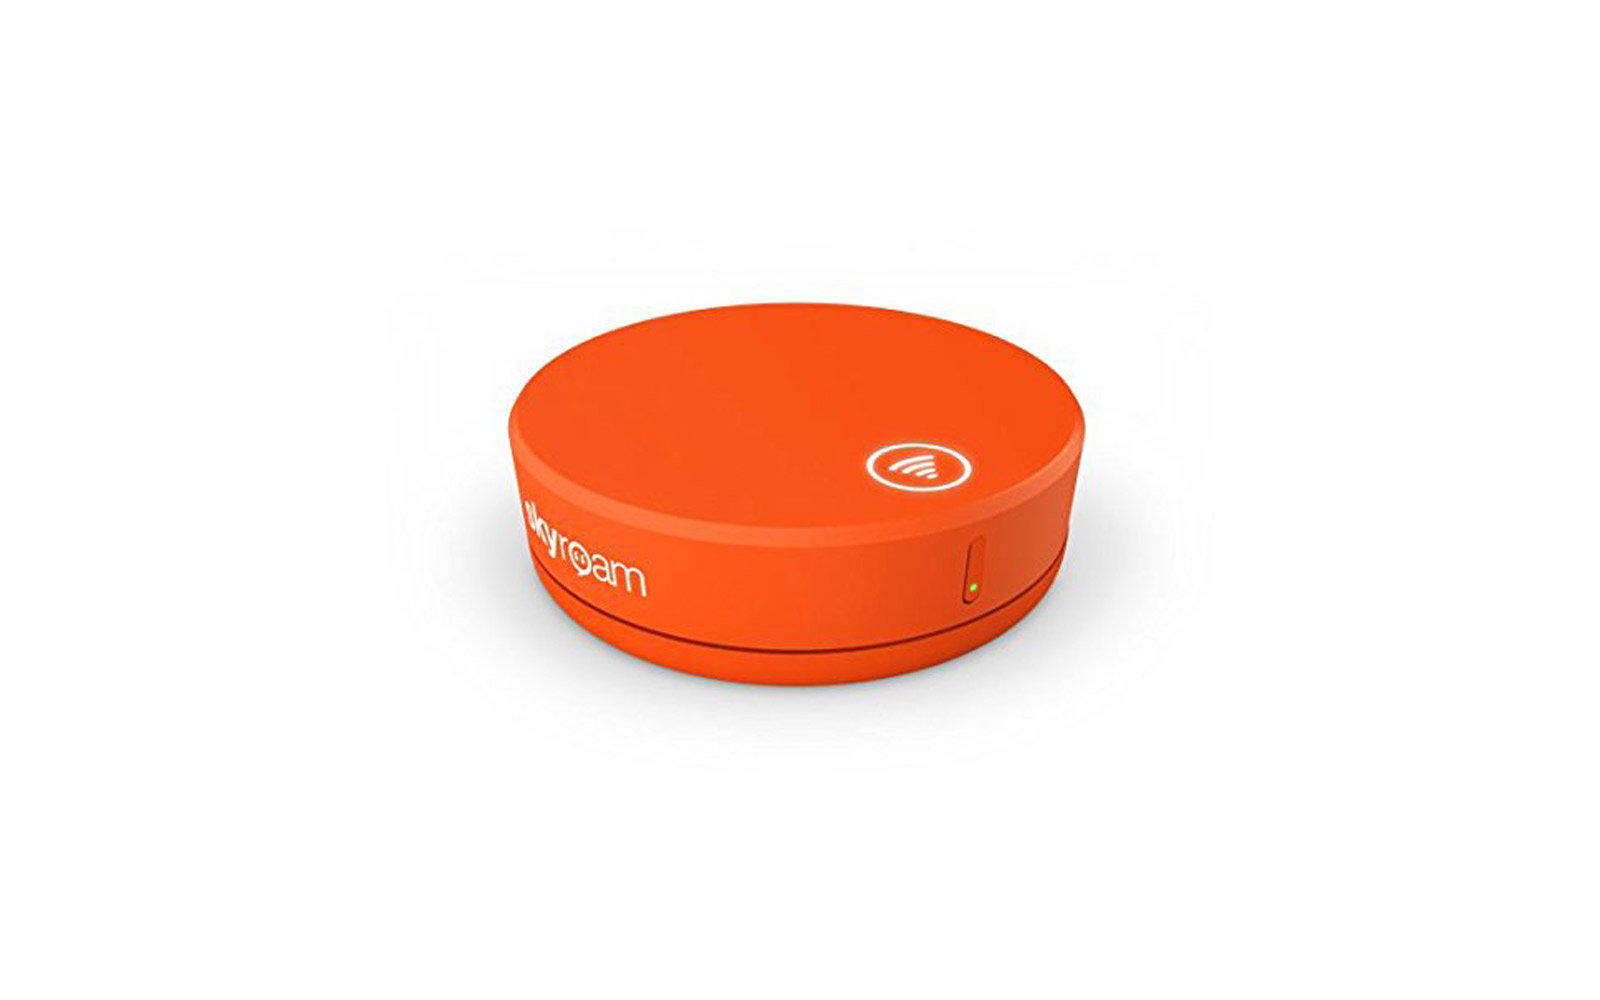 Long Term Travel Packing Skyroam electronic device